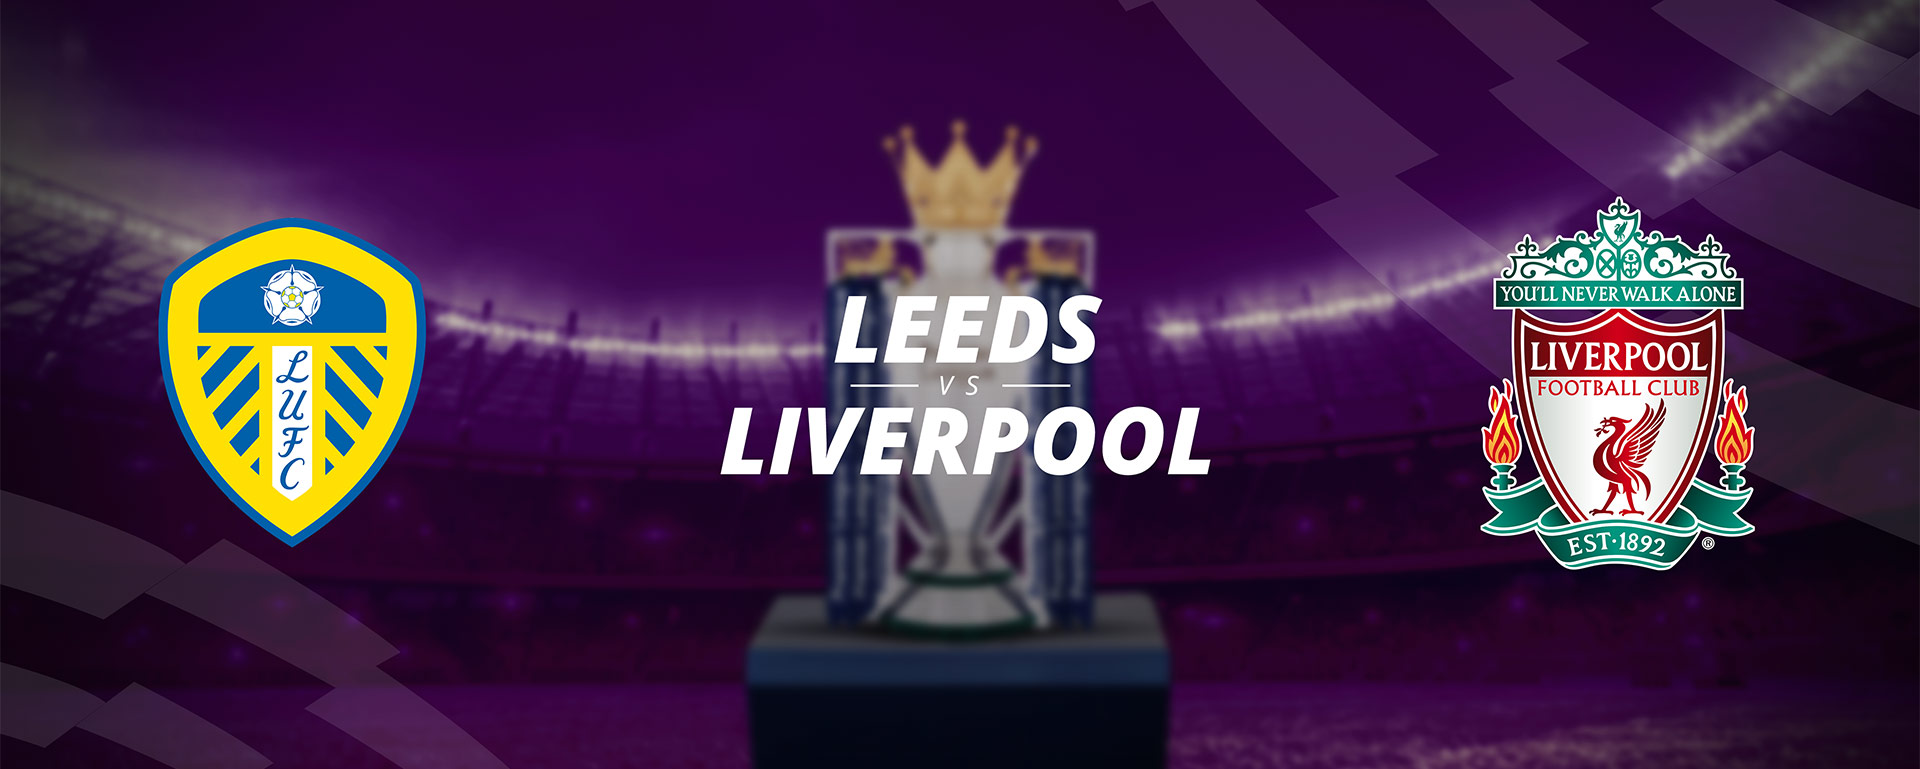 LEEDS VS LIVERPOOL: BETTING PREVIEW